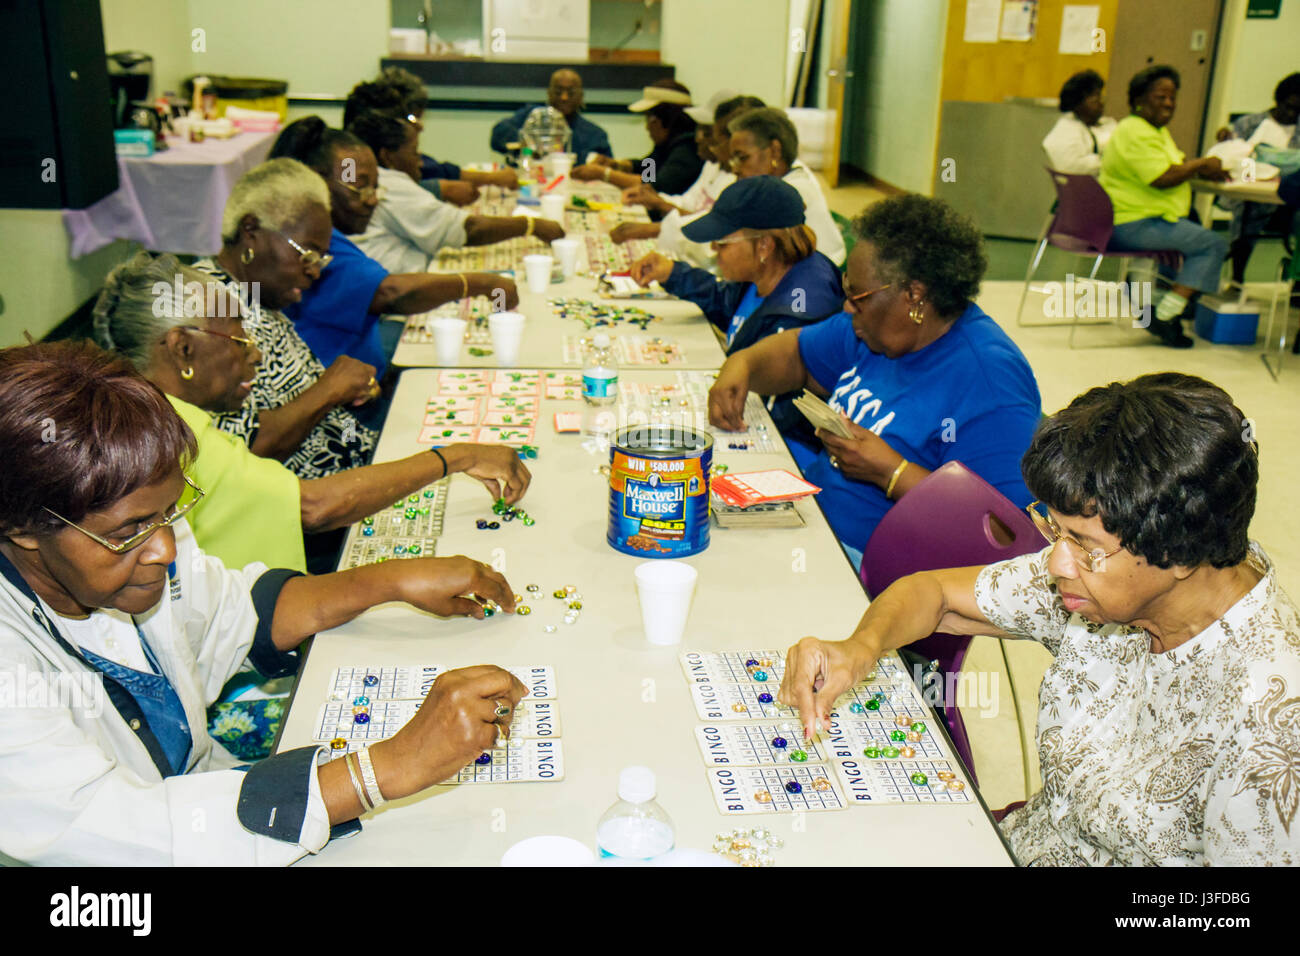 Miami Florida Charles Hadley Park Community Senior Center